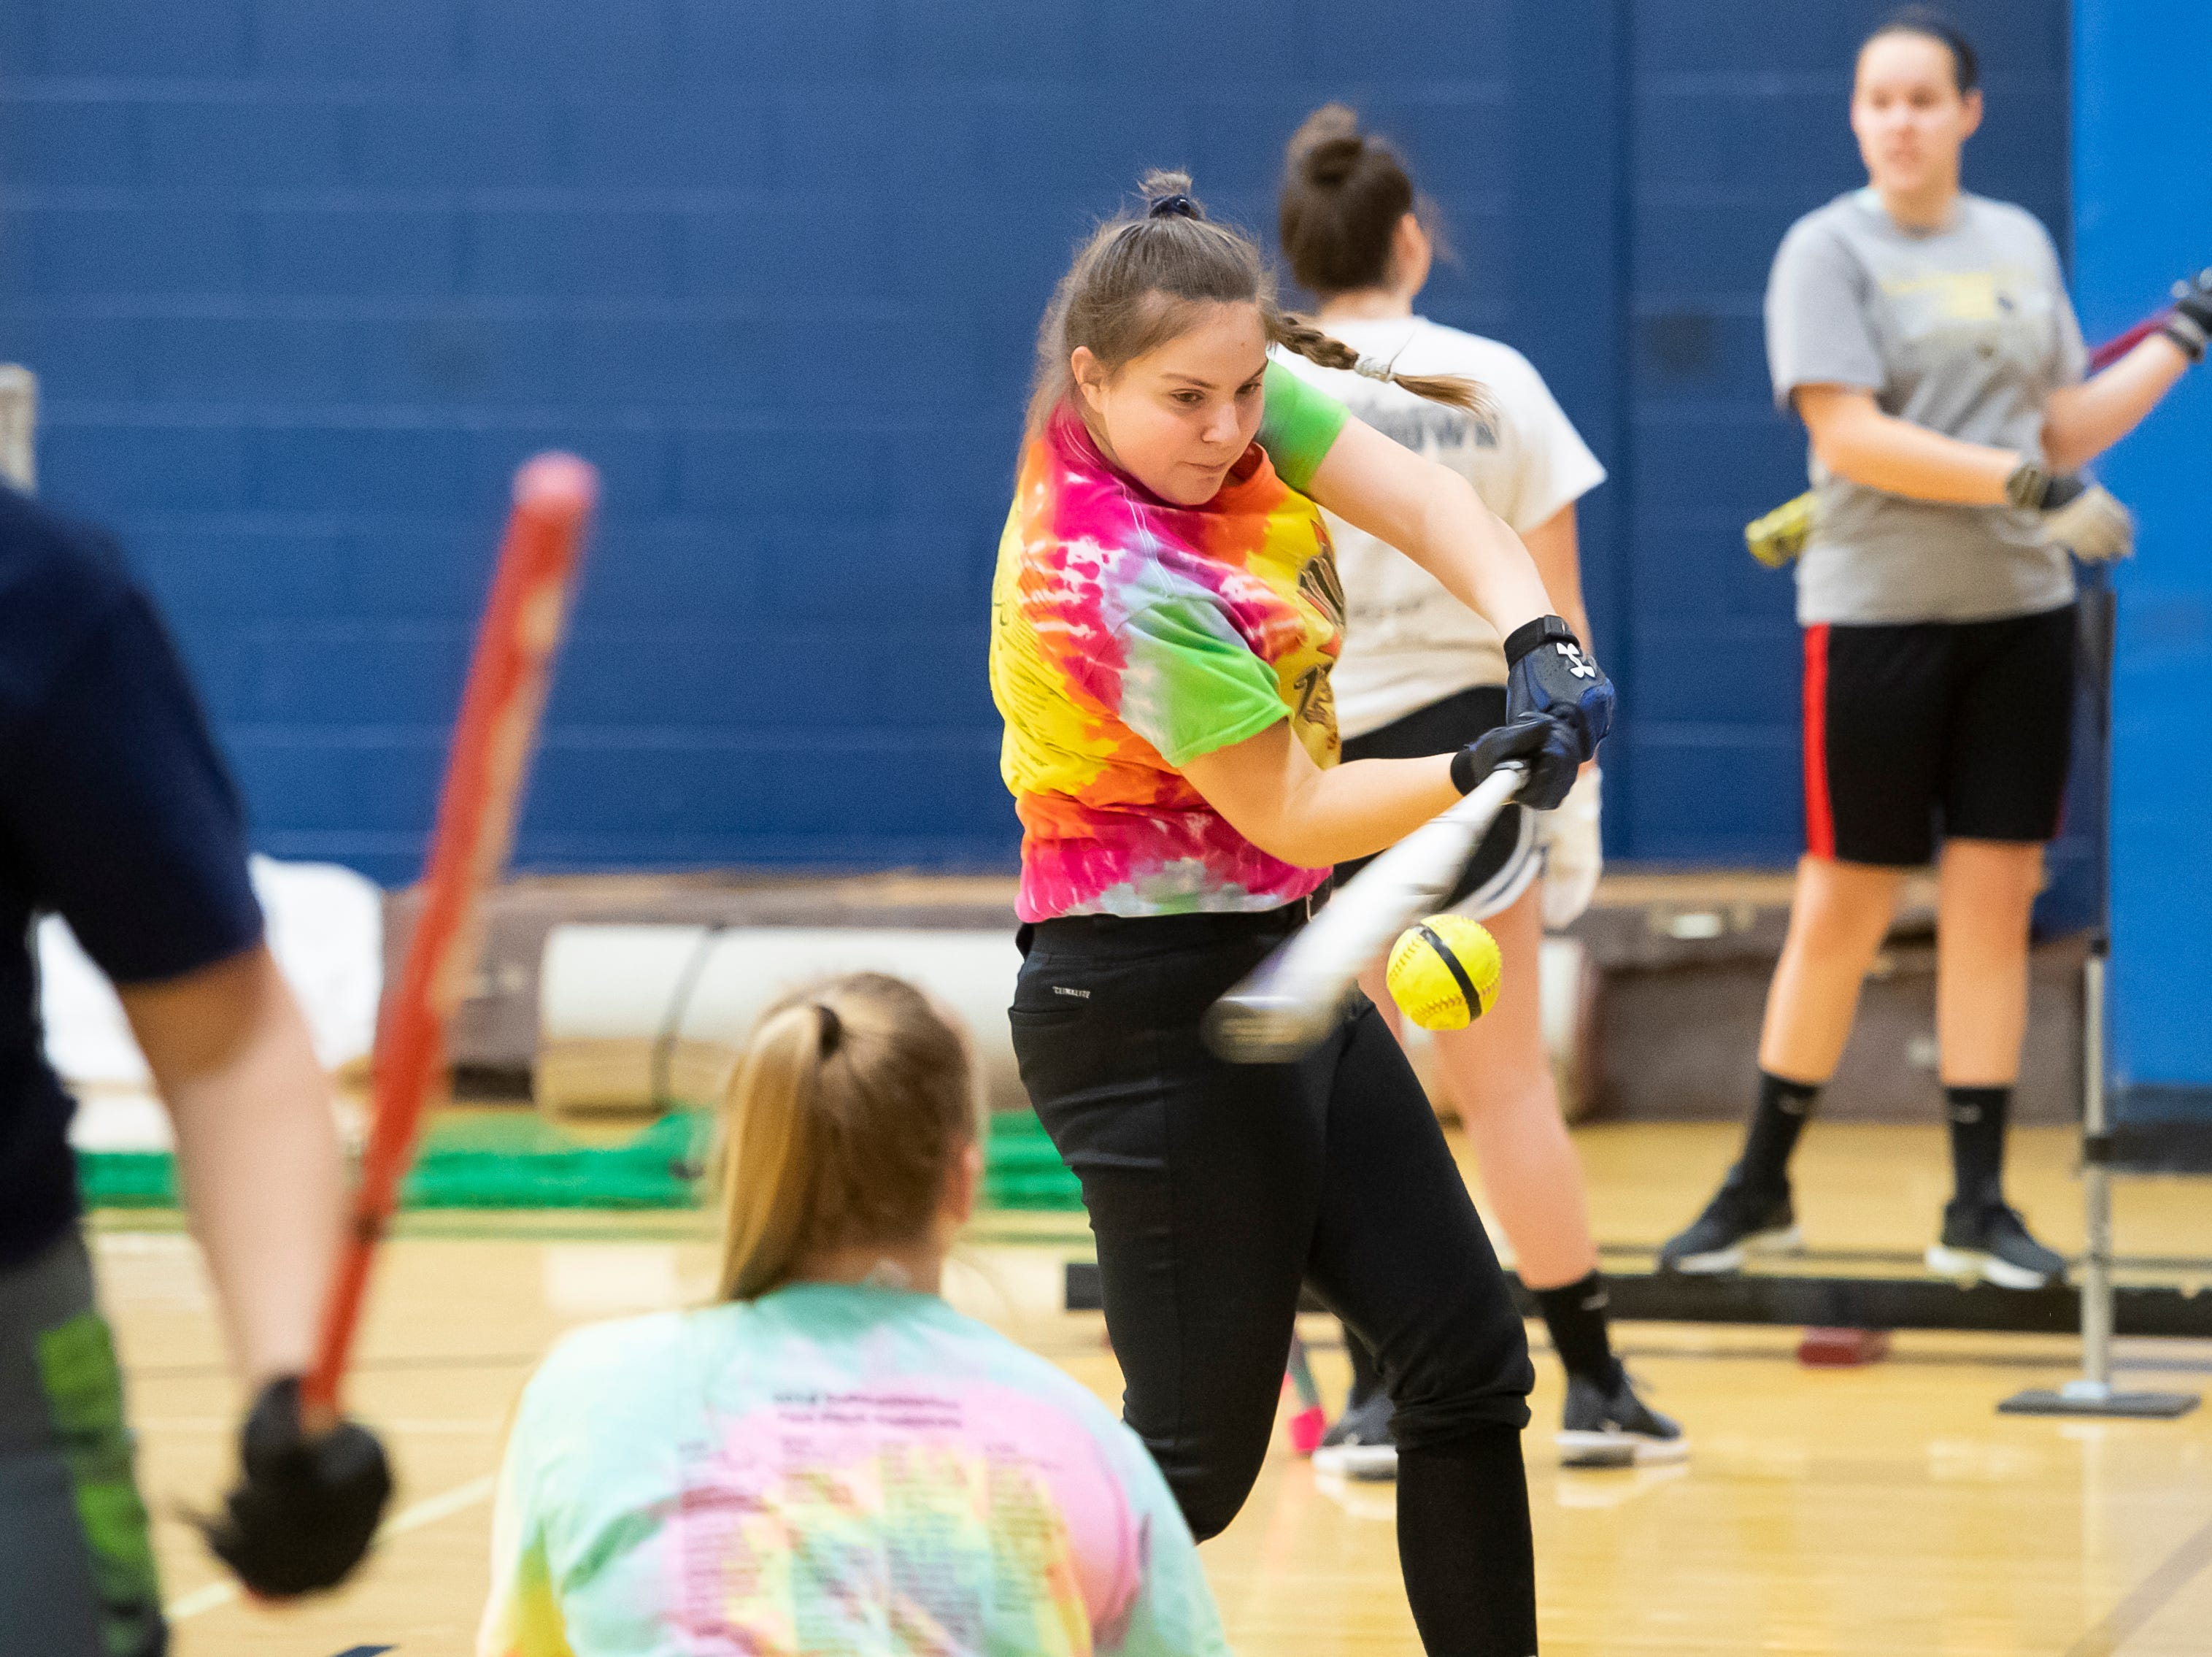 Littlestown's Rebecca Green connects with the ball during a hitting drill on the first day of softball practice inside the Littlestown High School gym Monday, March 4, 2019.